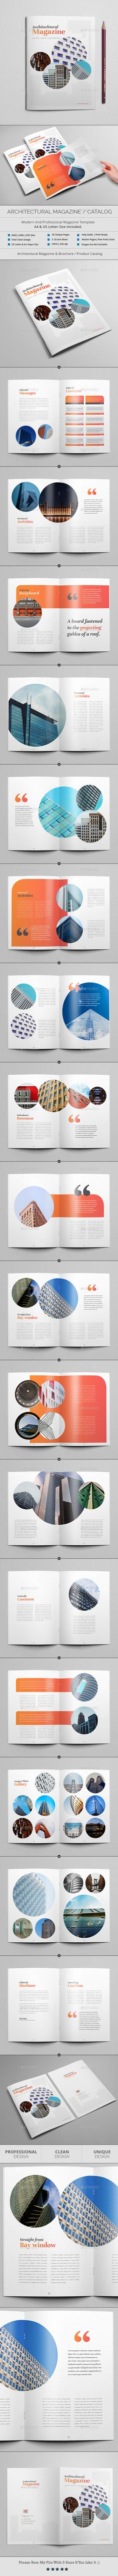 Architecture Magazine Template InDesign INDD